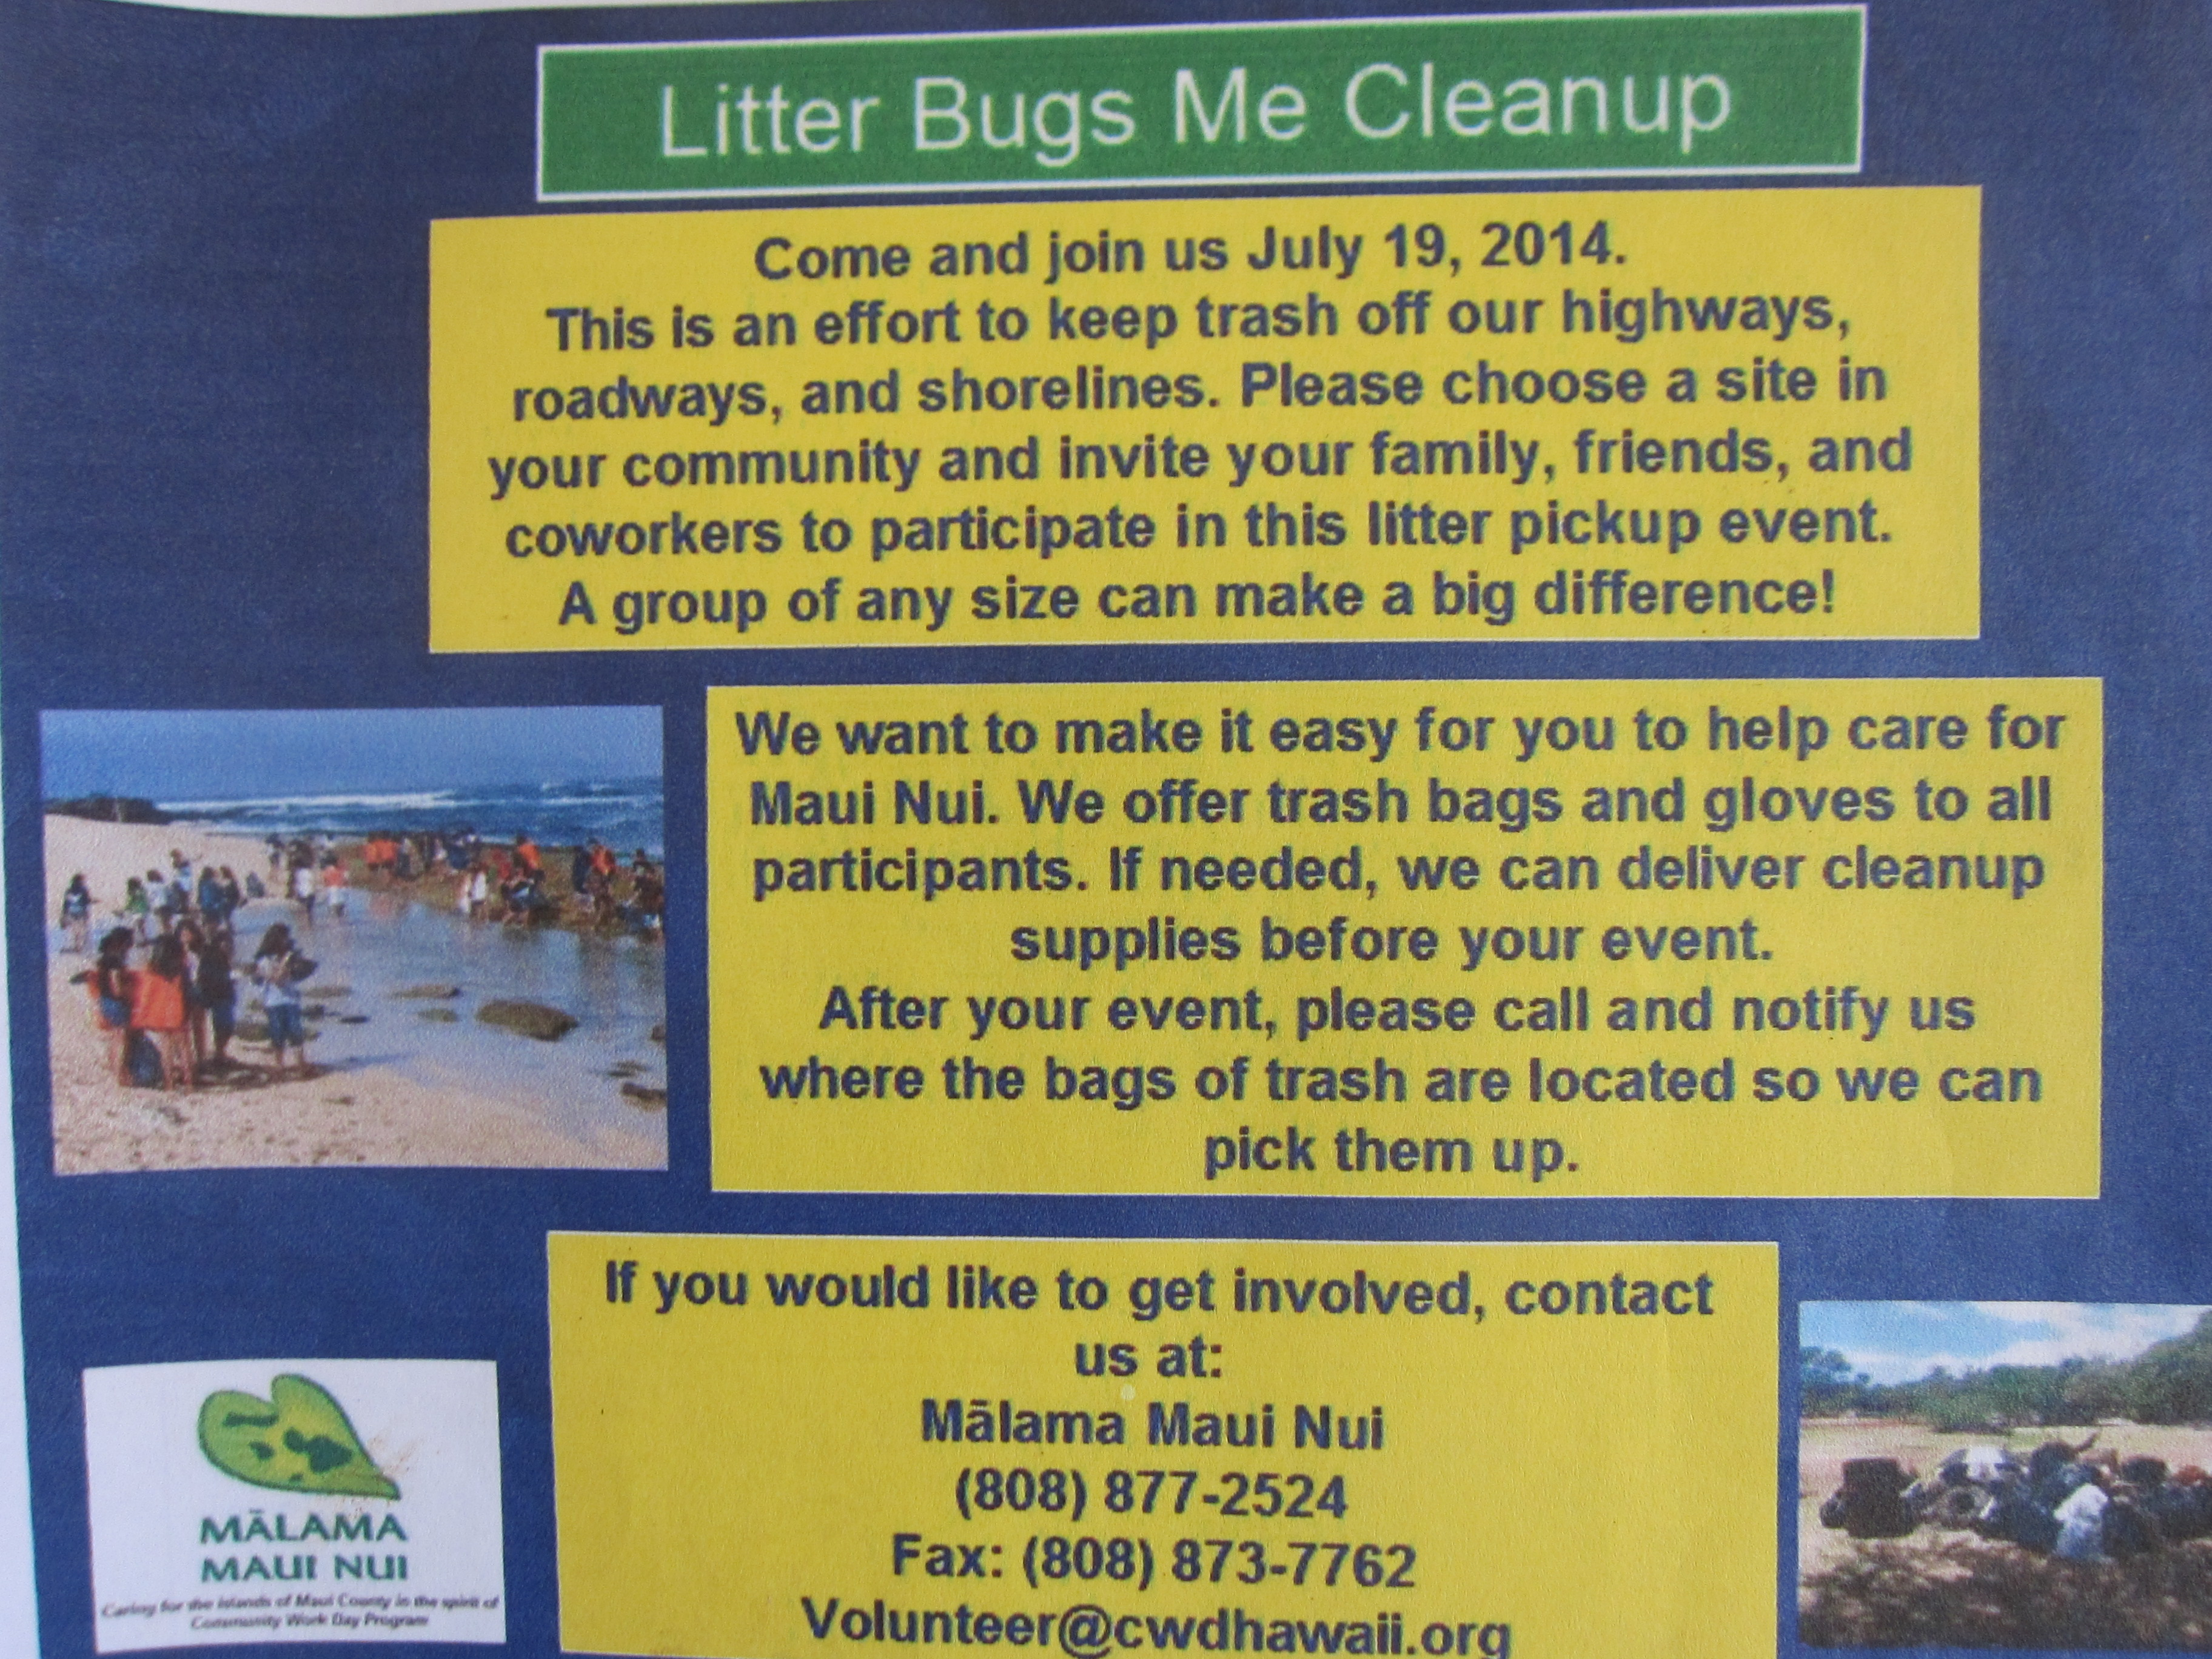 Island-wide Litter Cleanup Proposed for July, 19, 2014